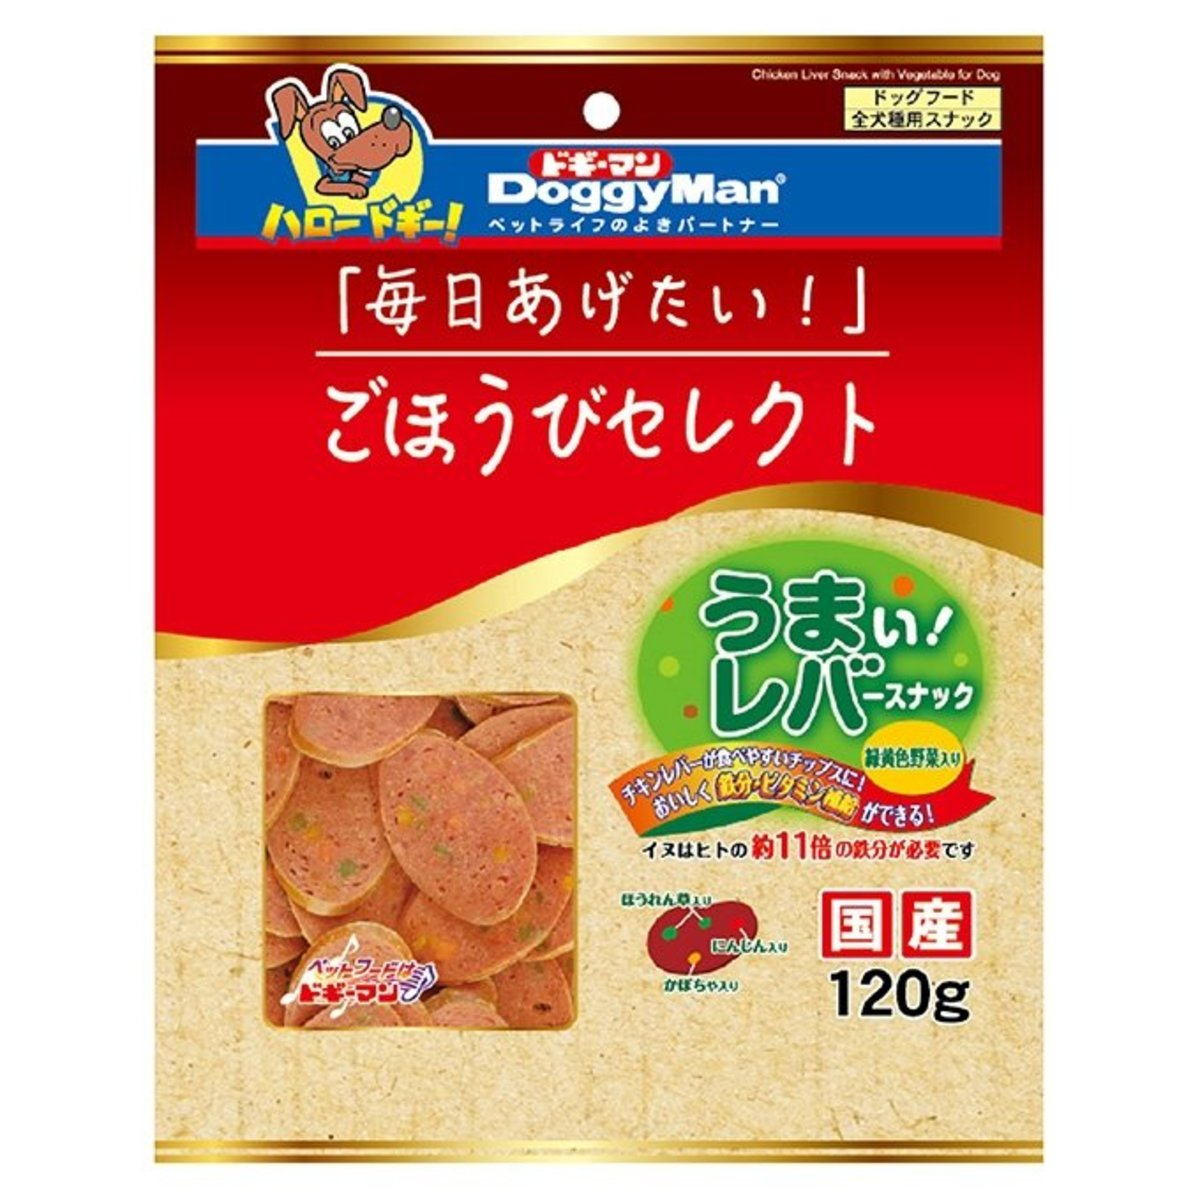 Daily Select Chicken Liver Dog Snack with Vege (120g) #82181 B2